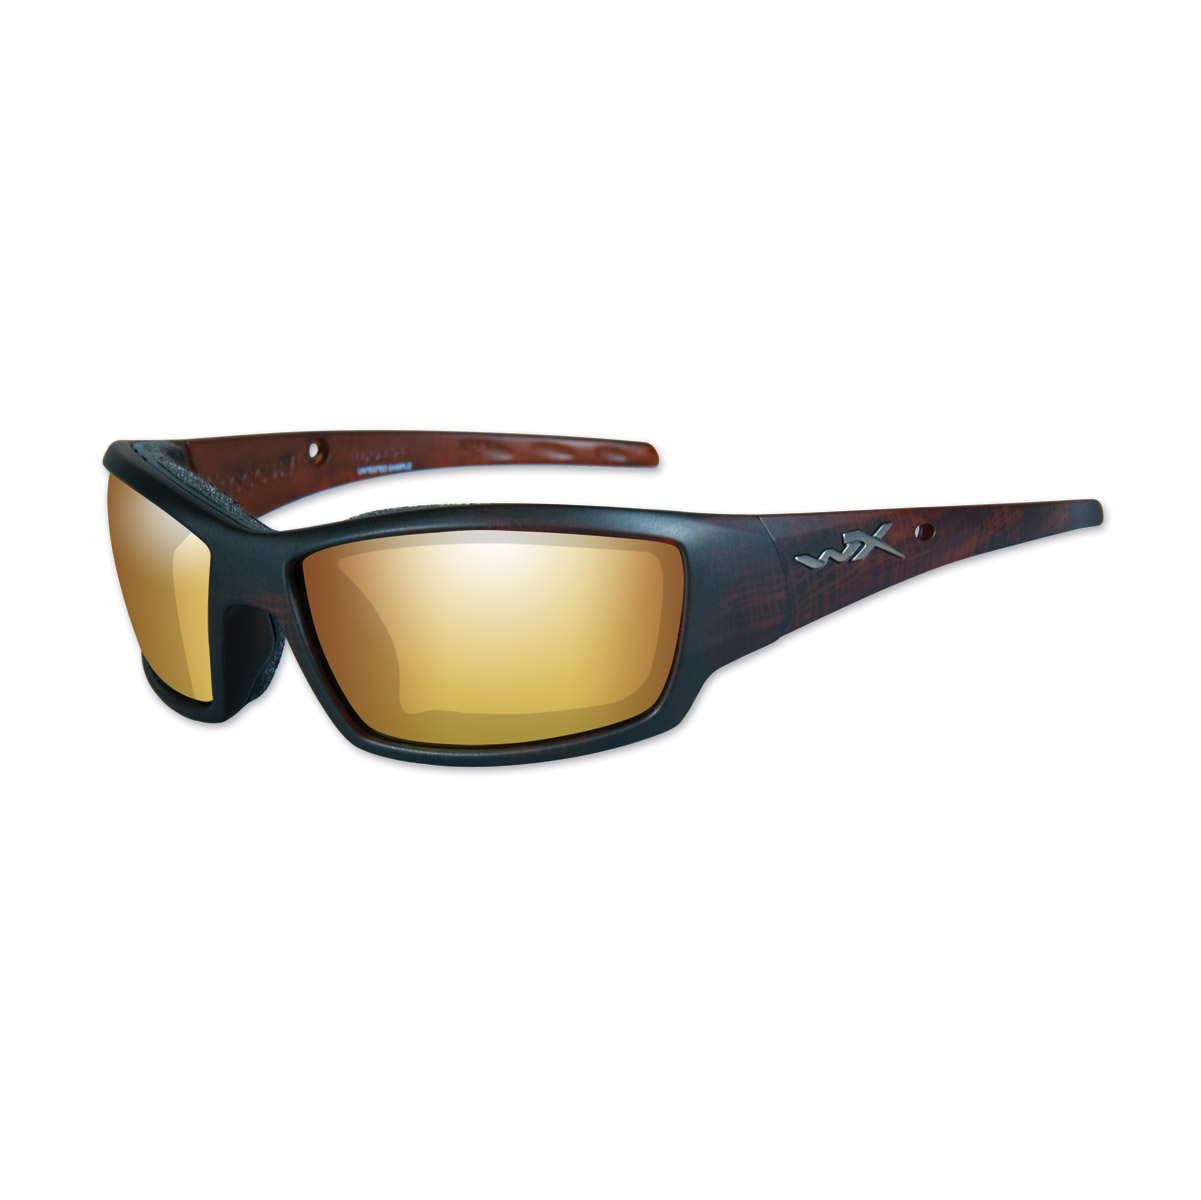 Wiley X WX Tide Matte Hickory Brown Frame w/Gold Mirror Lens Sunglasses